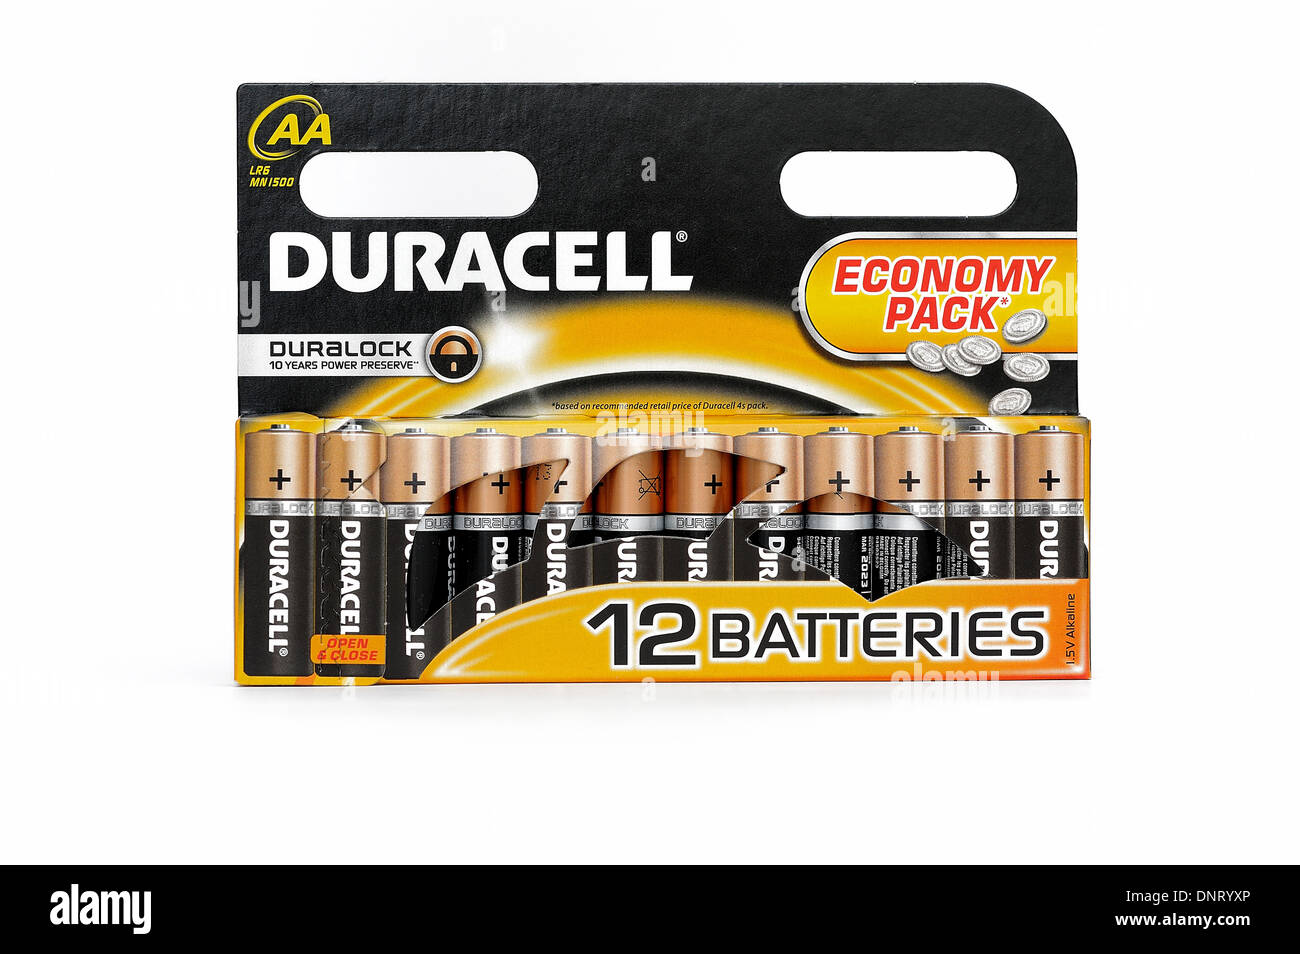 Duracell economy 12 pack duralock batteries AA - Stock Image